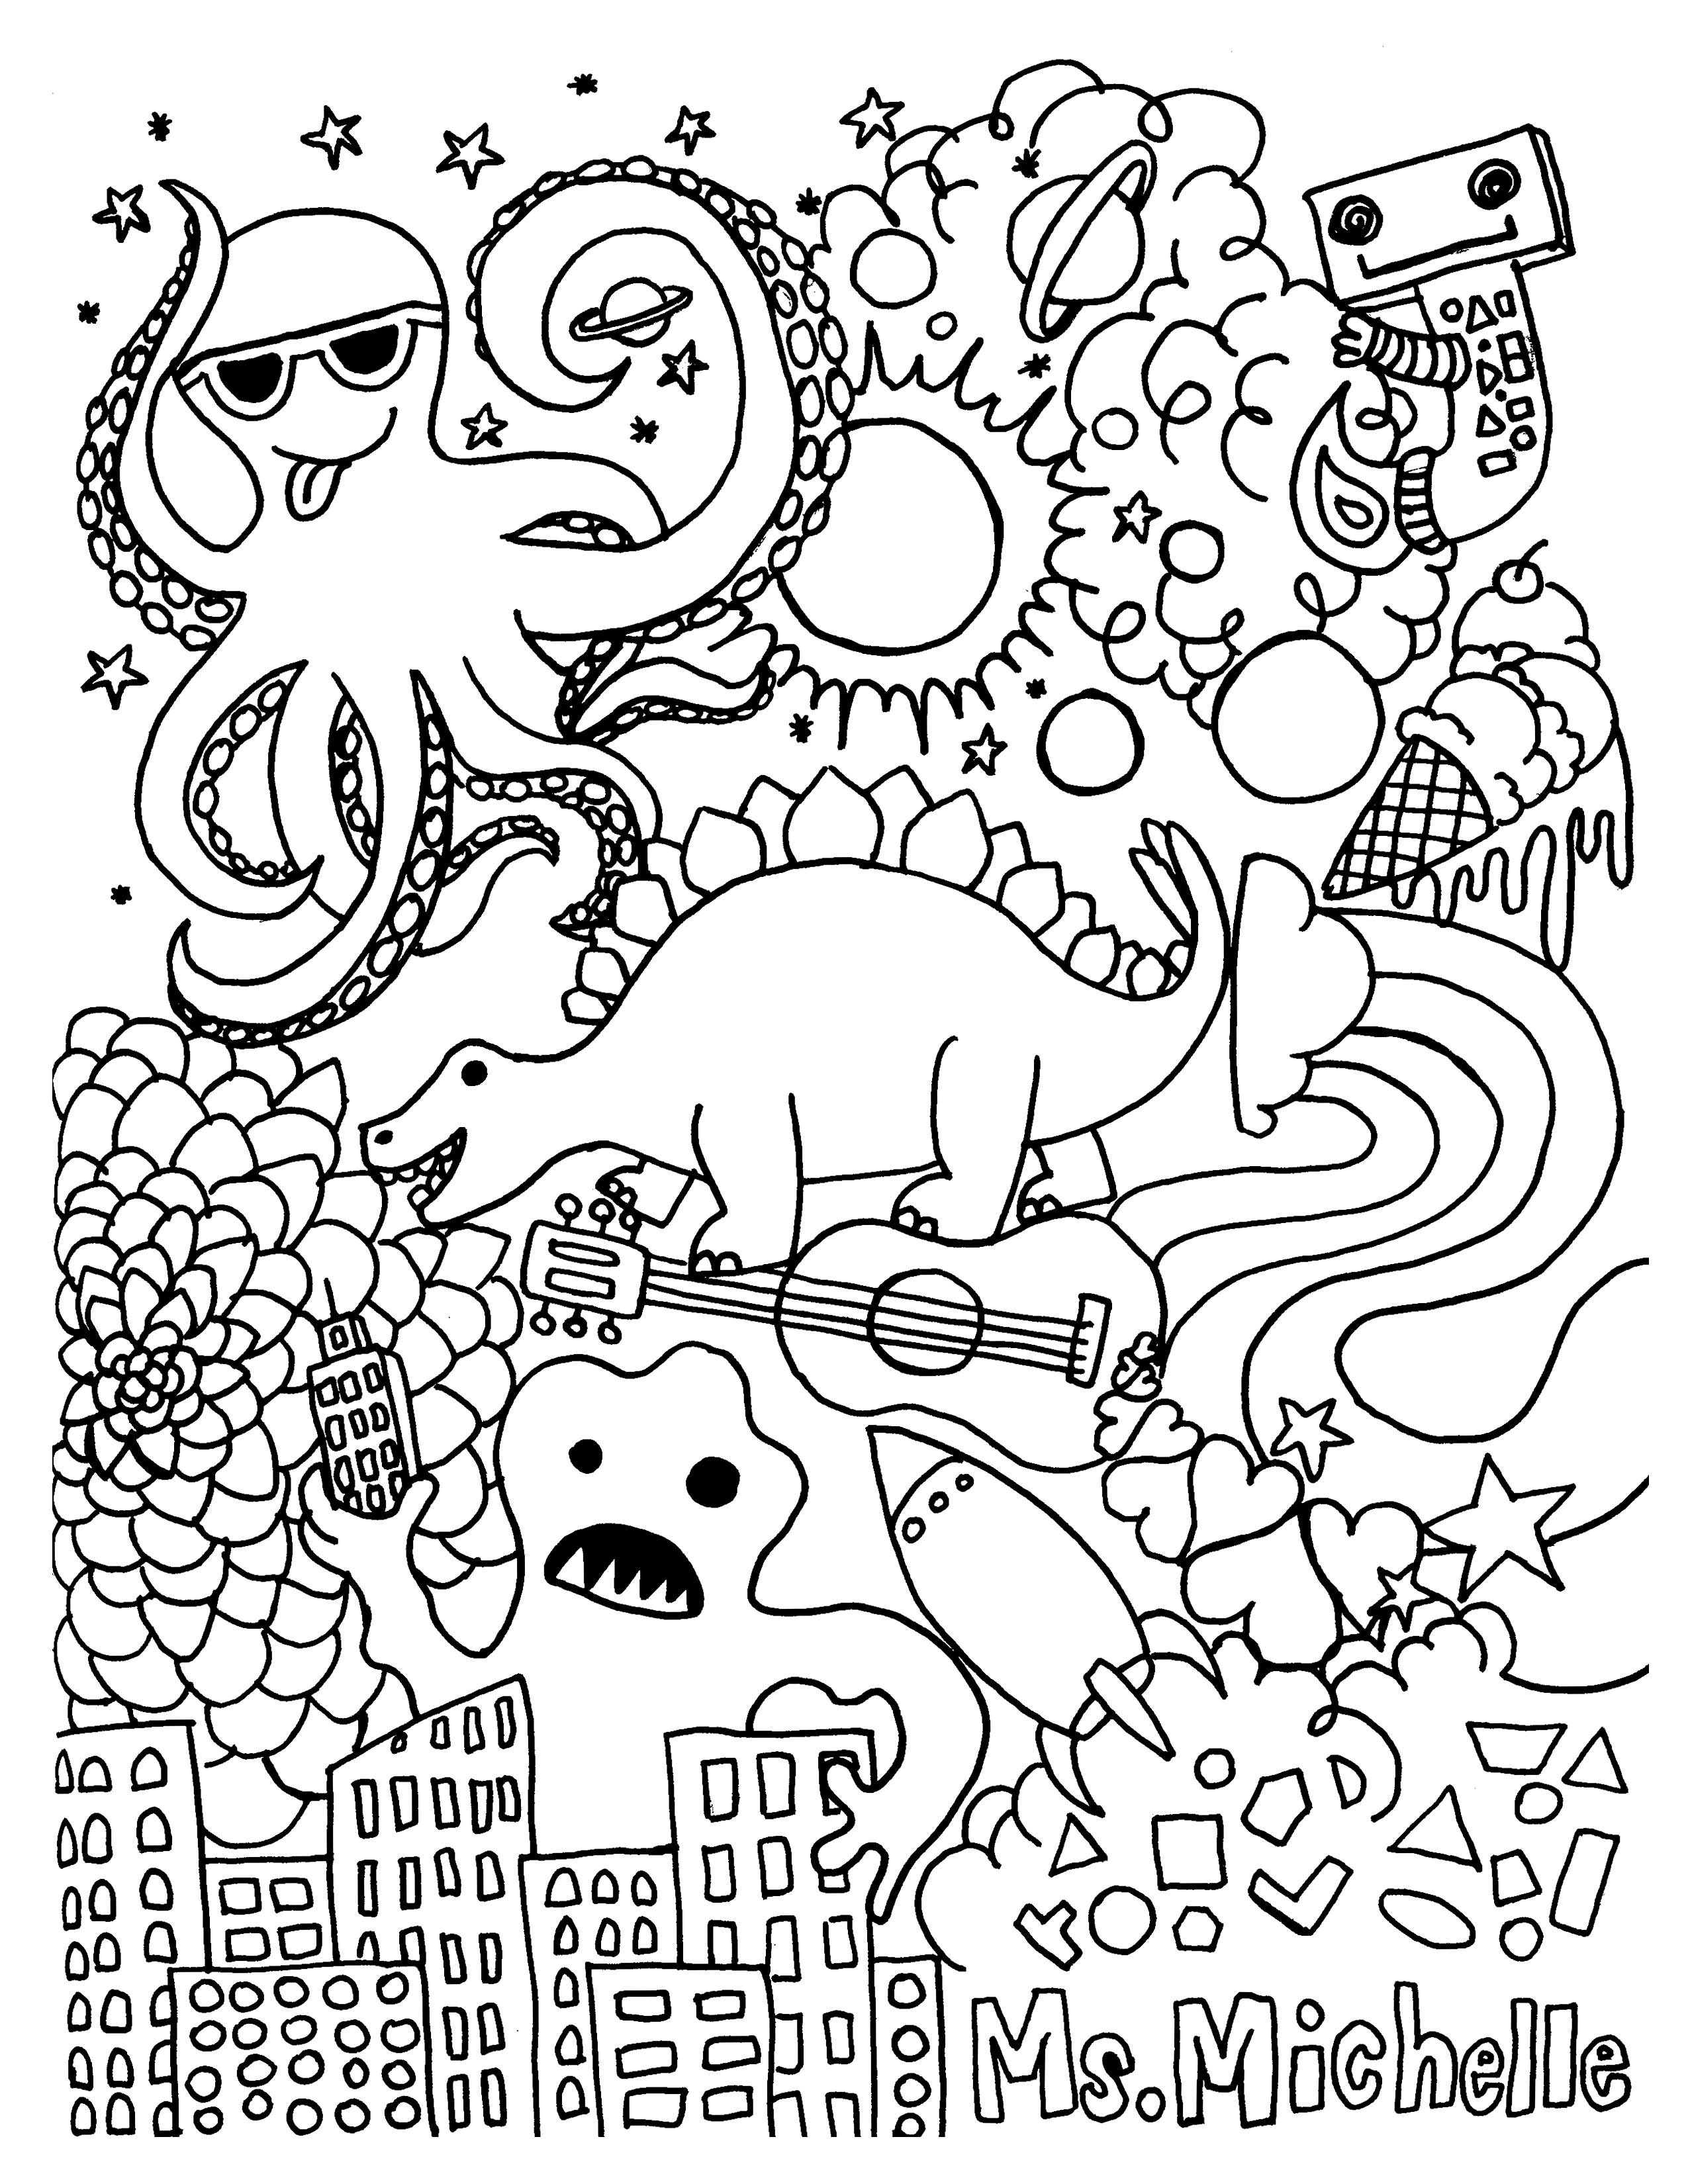 Coloring Ideas : Free Printable Coloring Pages For Kids Halloween - Free Printable Coloring Books